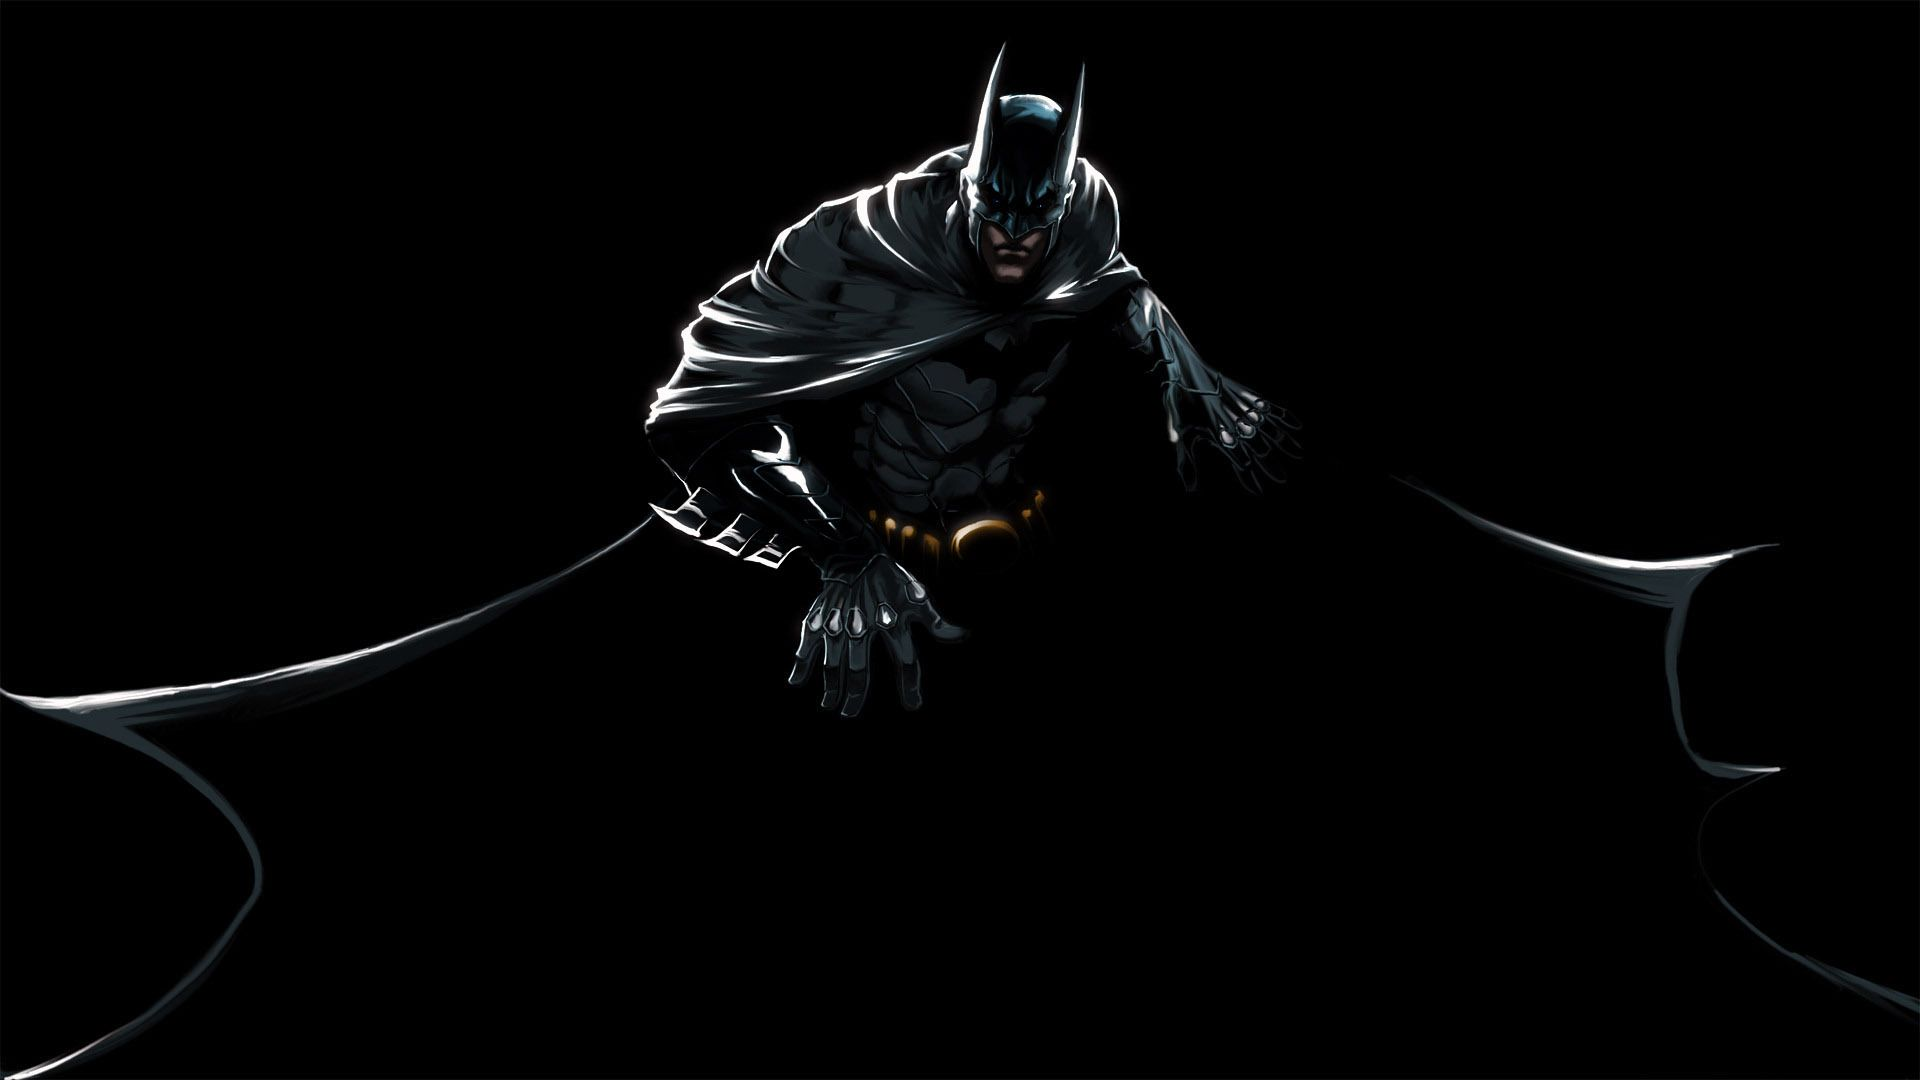 batman on black background in hd wallpaper